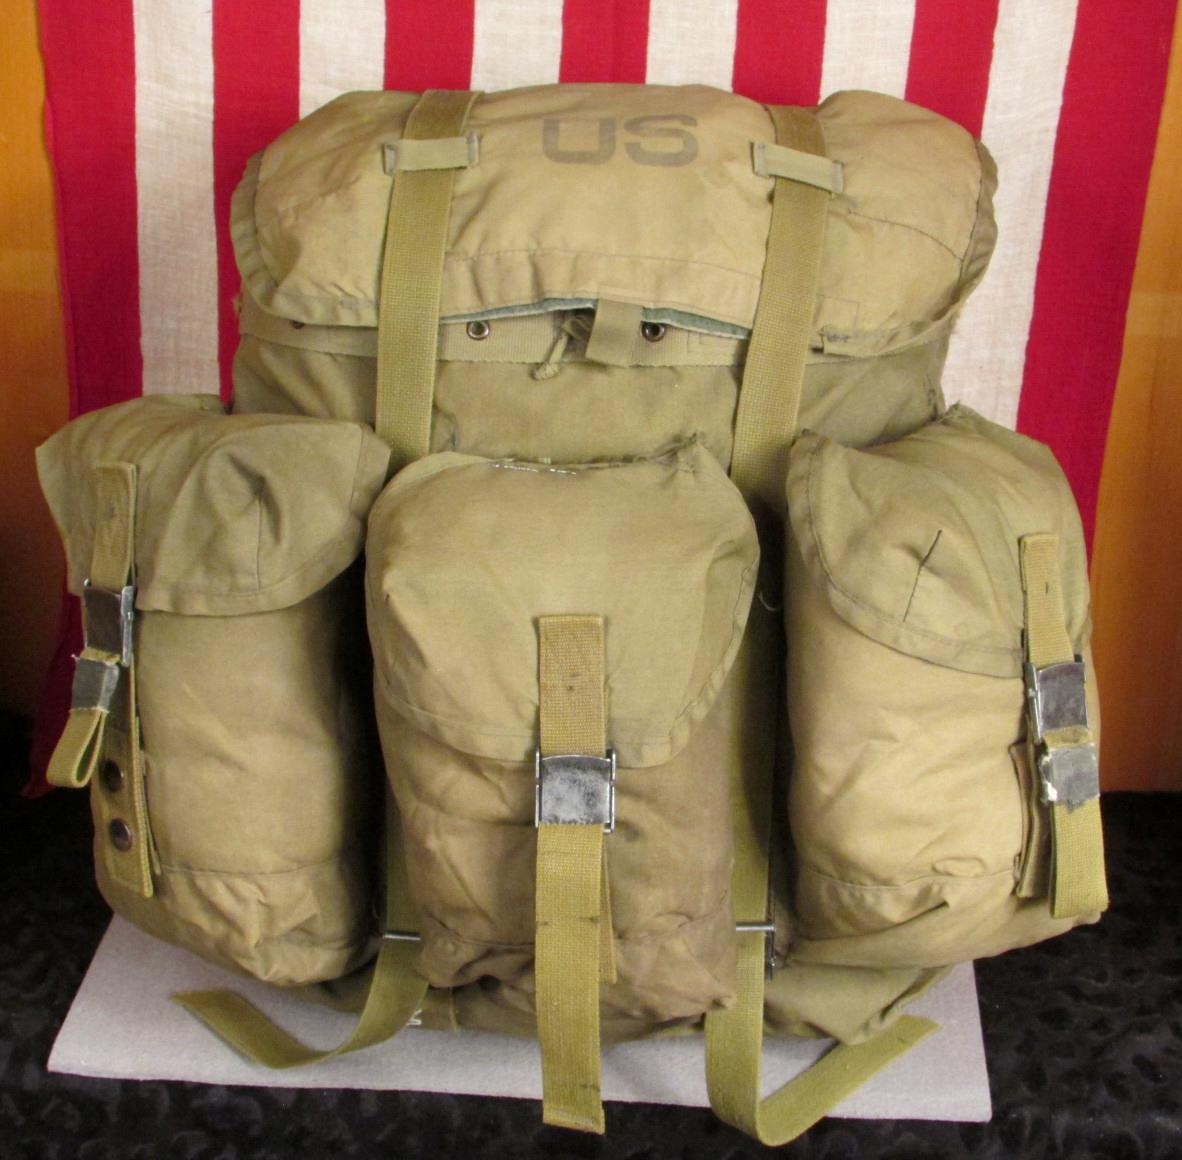 Details about Vintage US Army Military OD Green Alice Rucksack Combat  Backpack LC-1 Field Pack 5316e19af835